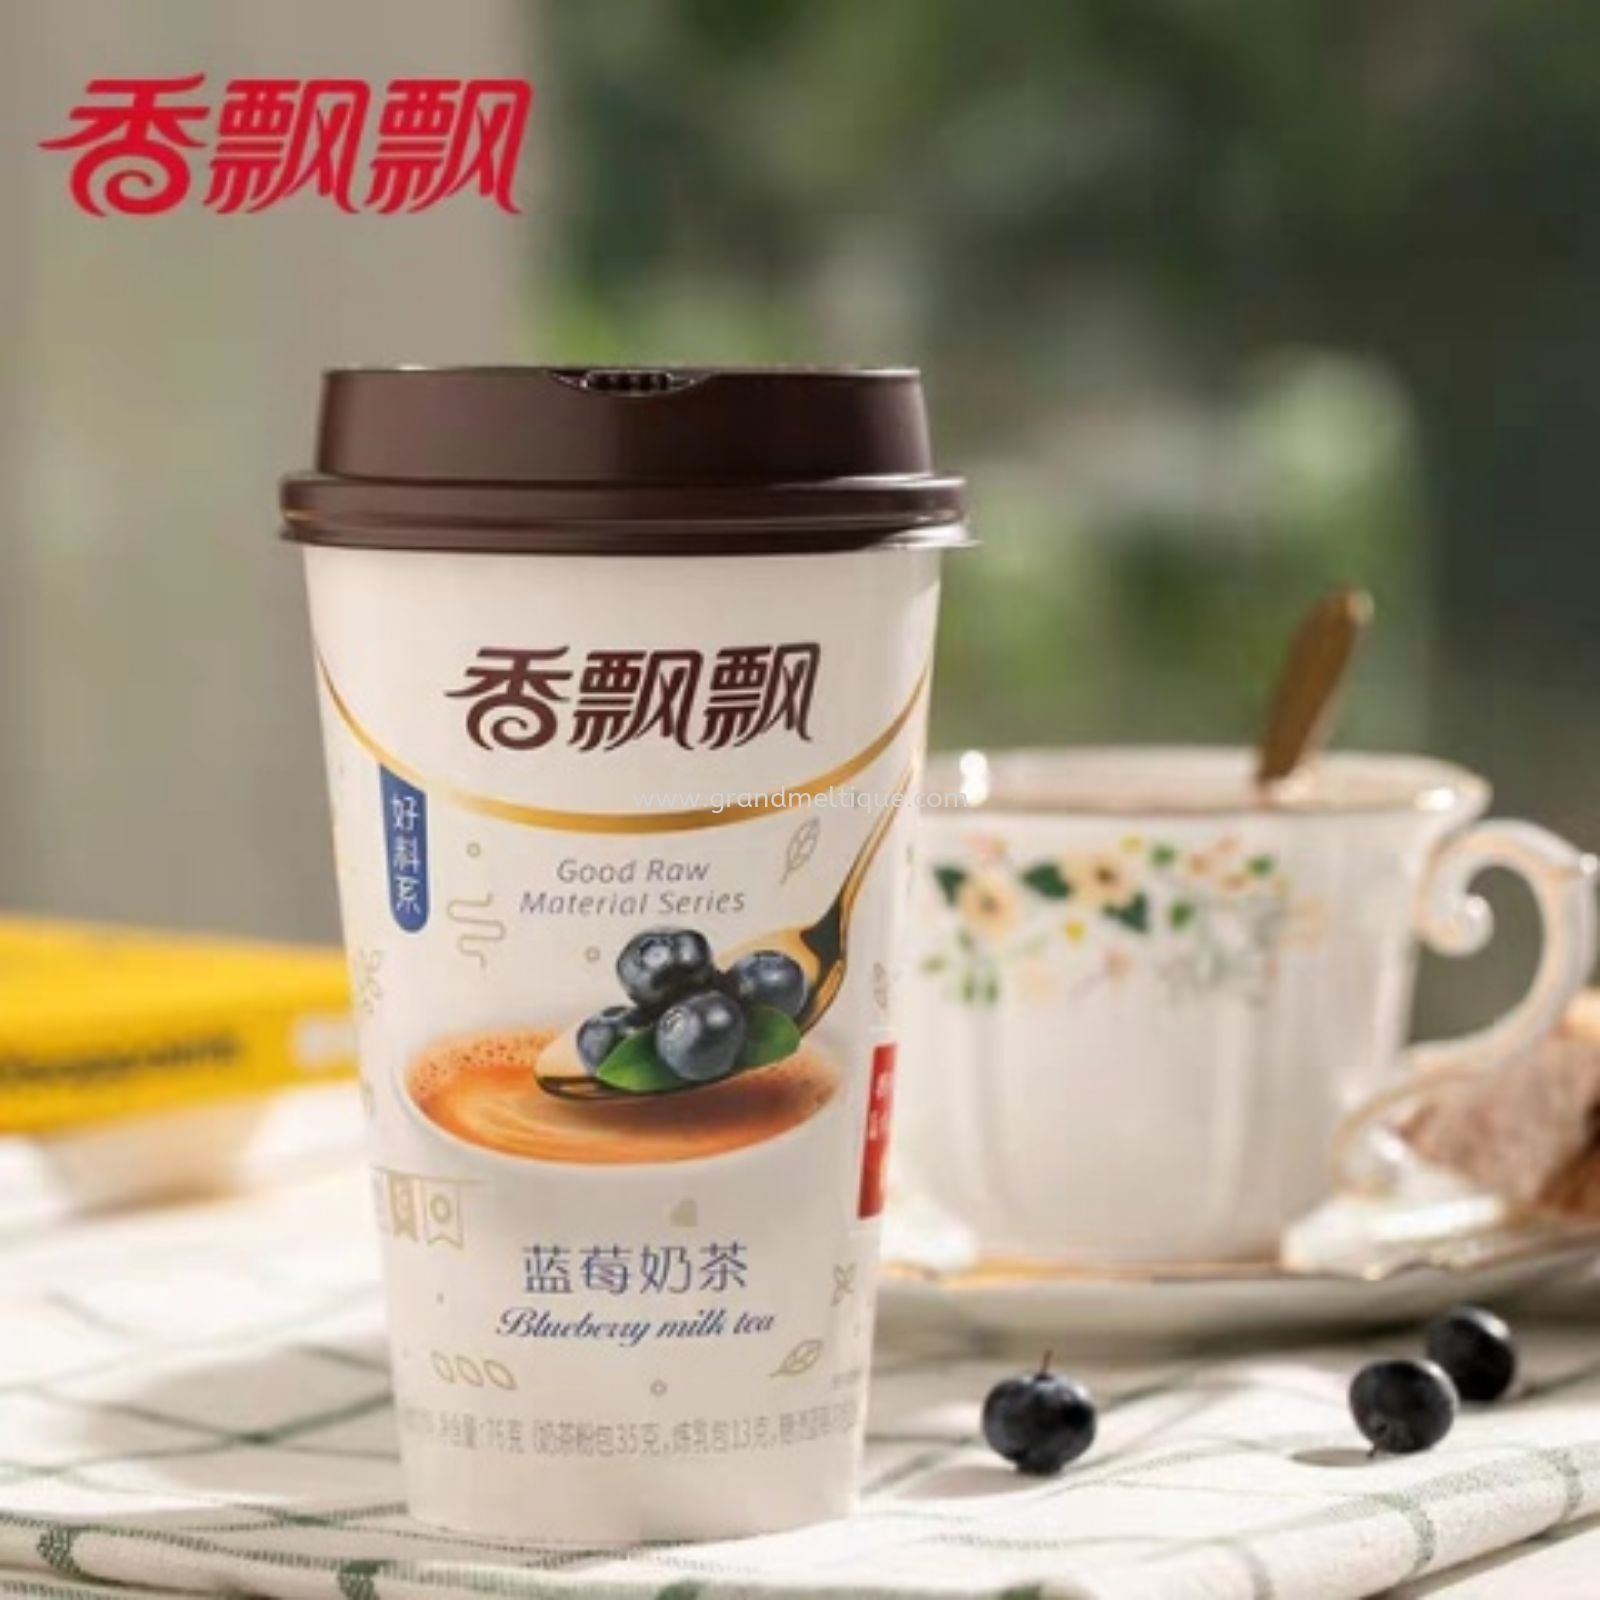 XPP BLUEBERRY MILK TEA 香飘飘蓝莓奶茶